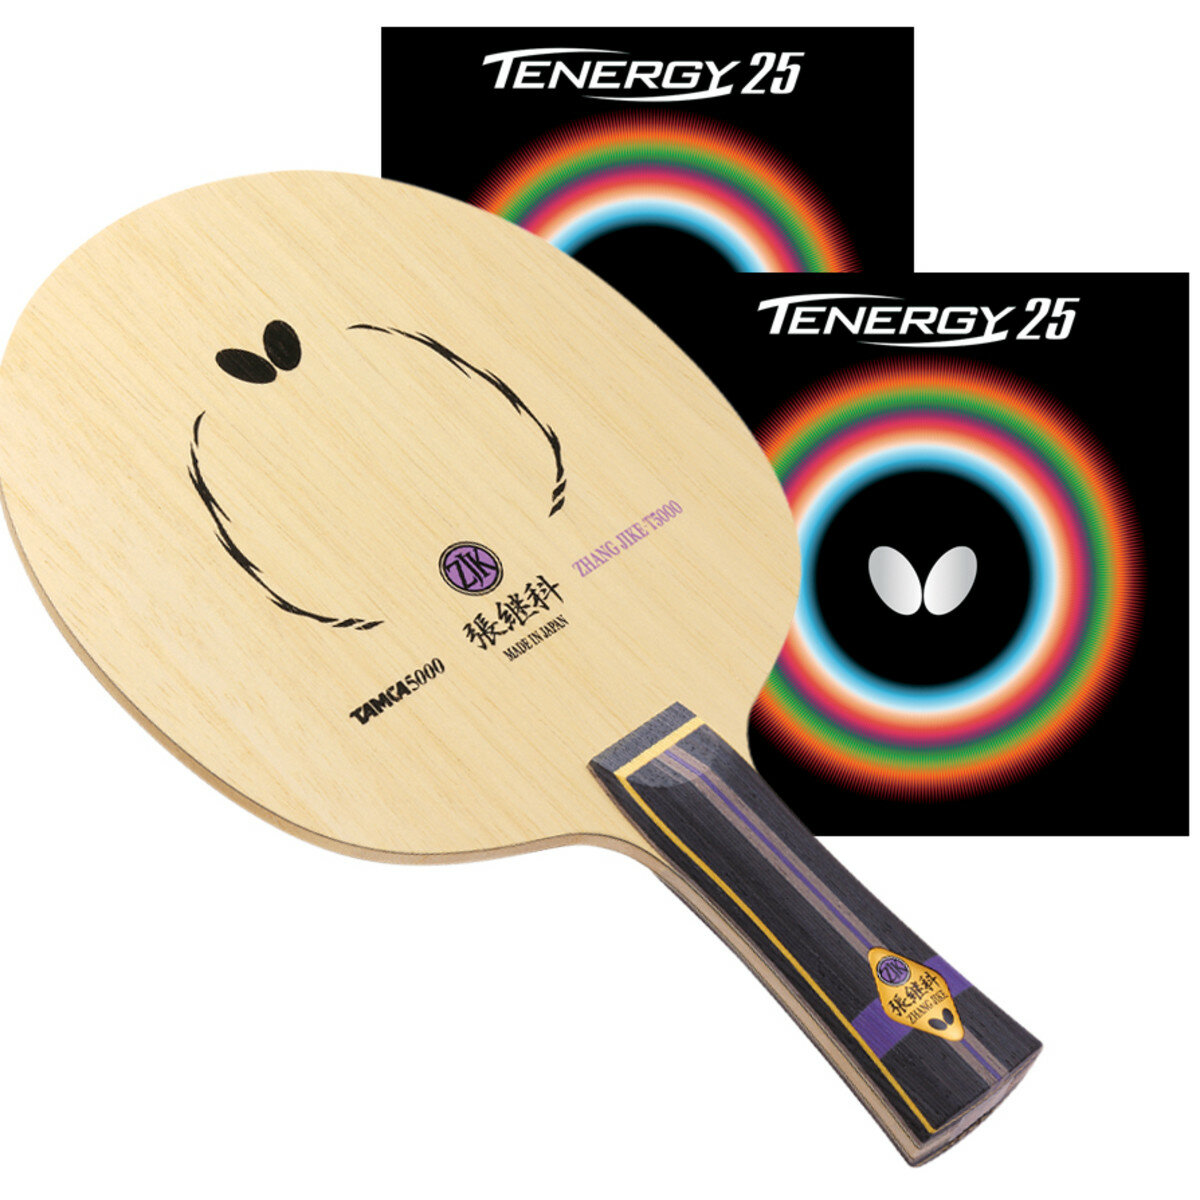 Butterfly Zhang Jike T5000 Fl Pro Line Paddle With Tenergy 25 Rubber Wayfair